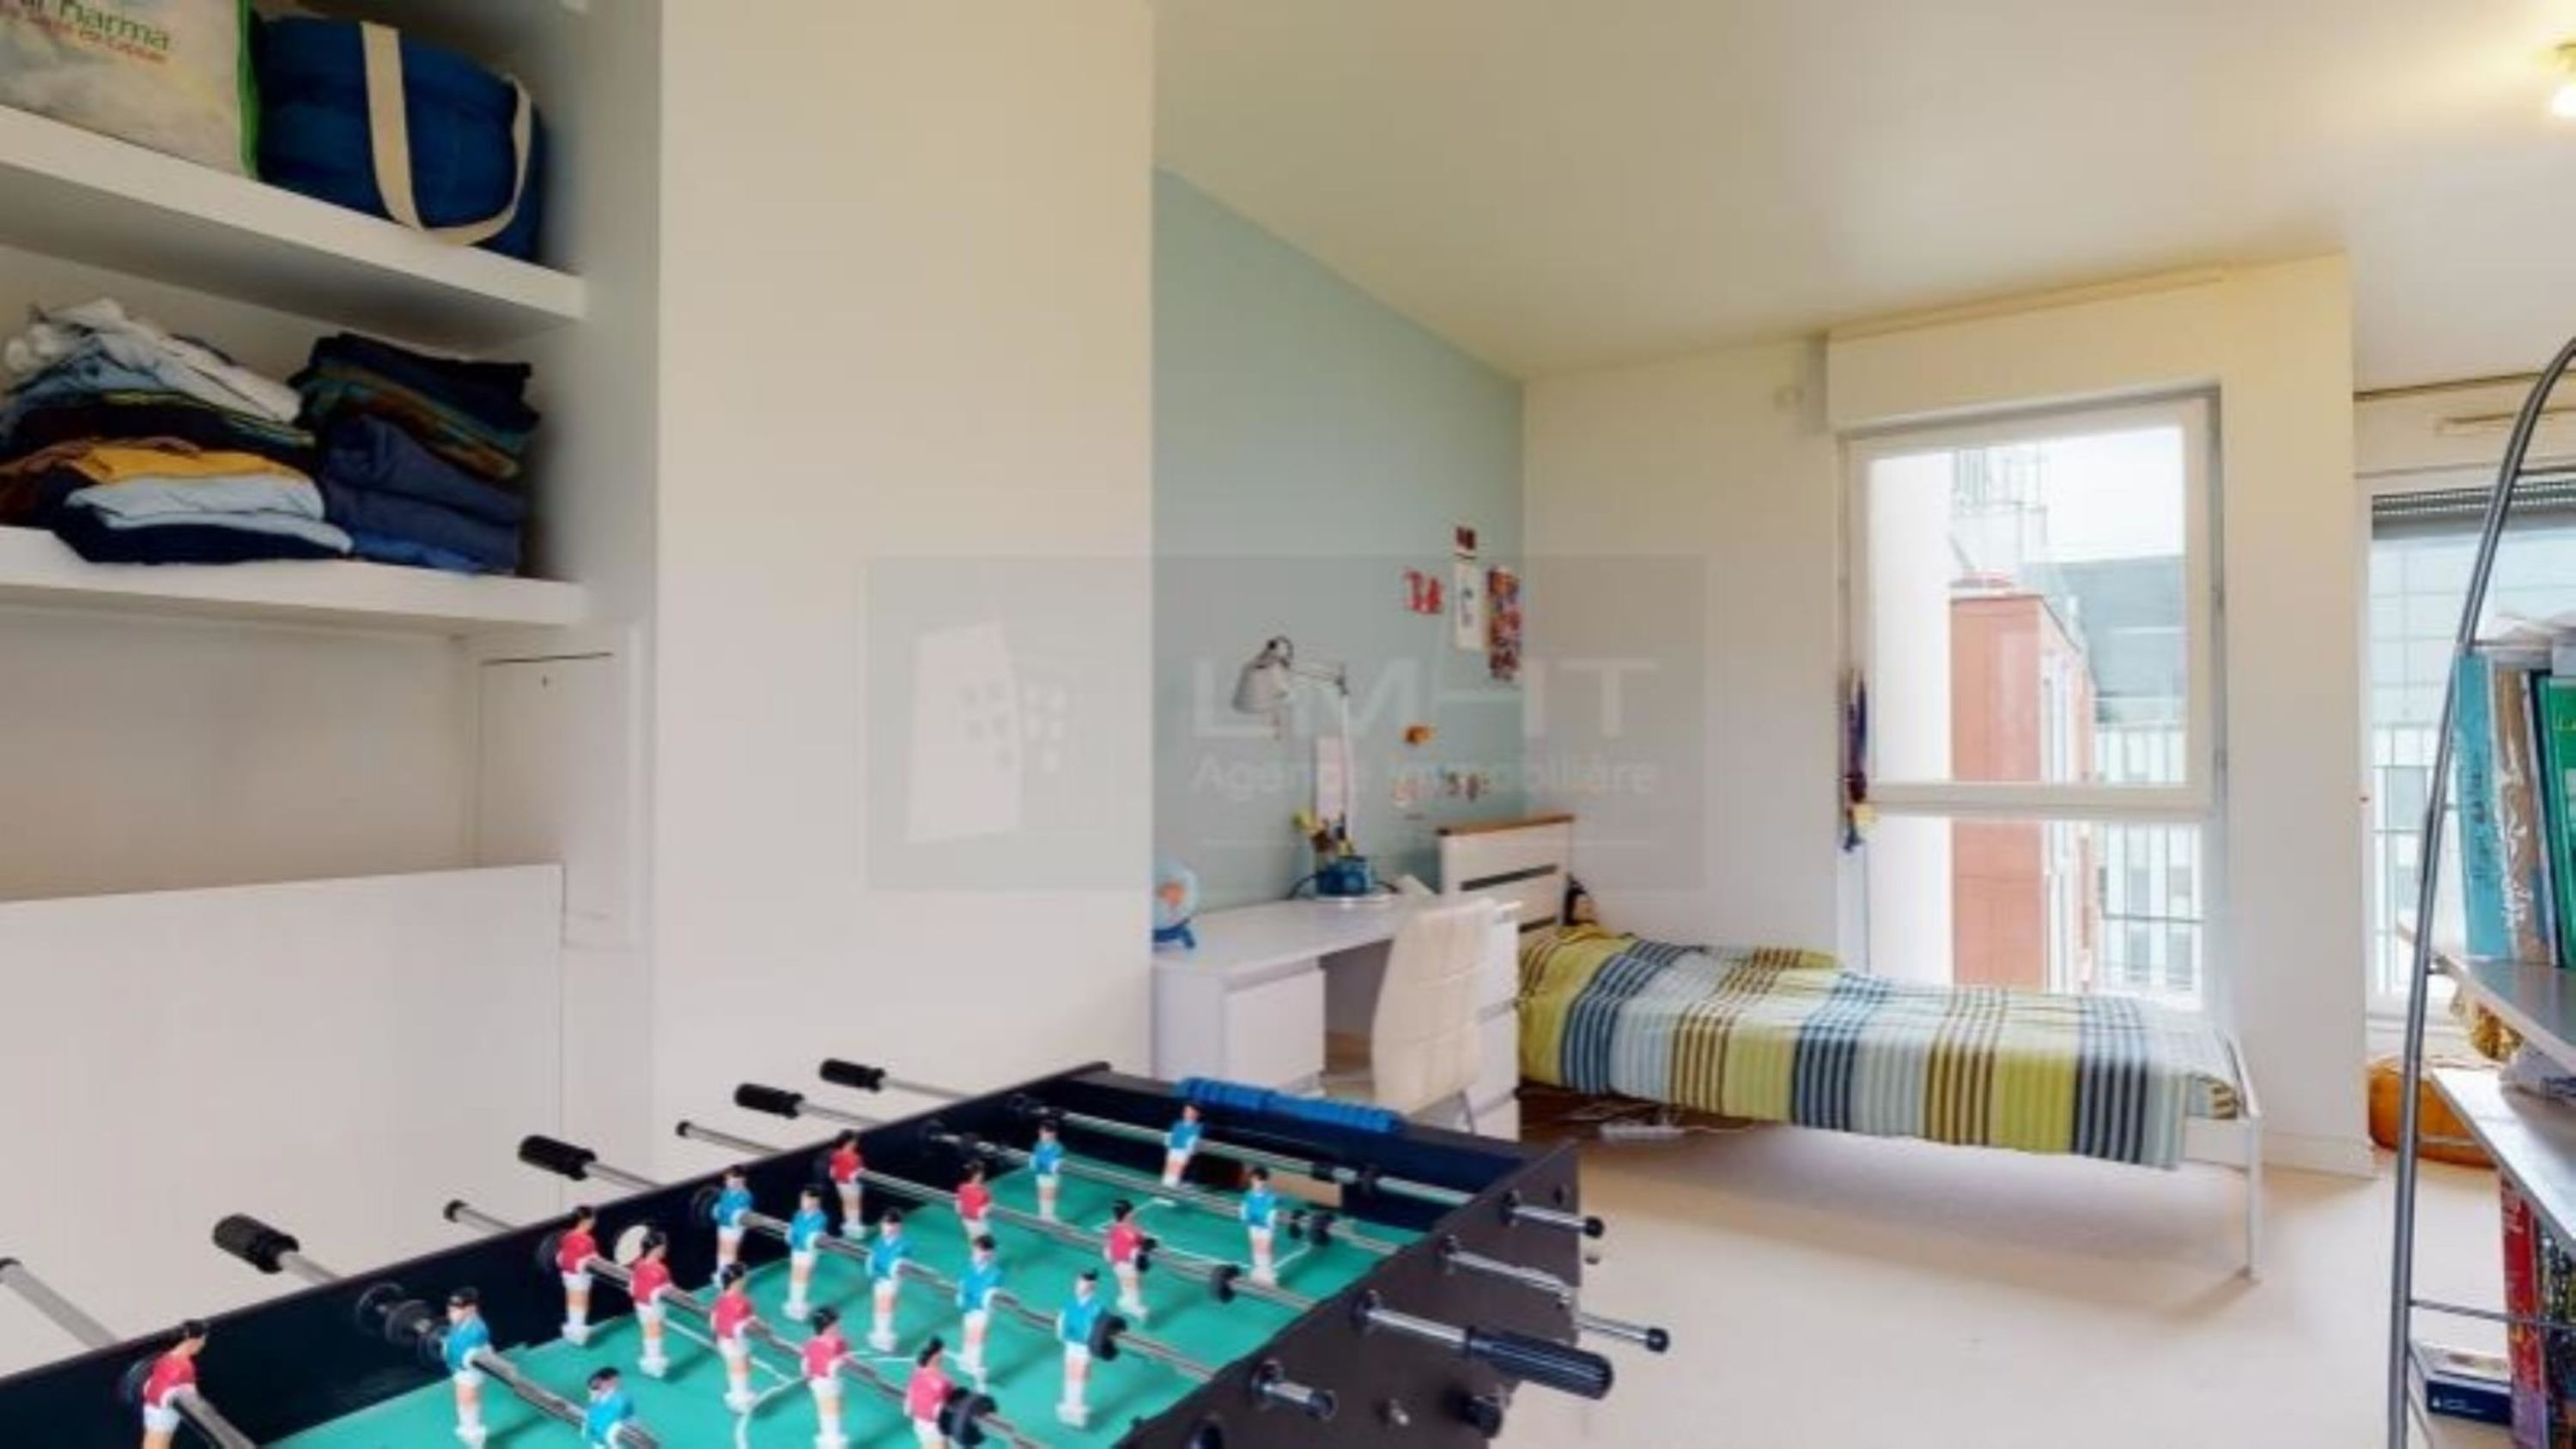 agence immobilière sevres 92 le chesnay 78 achat vente location appartement maison immobilier LMHT ANF IVVZLWNY